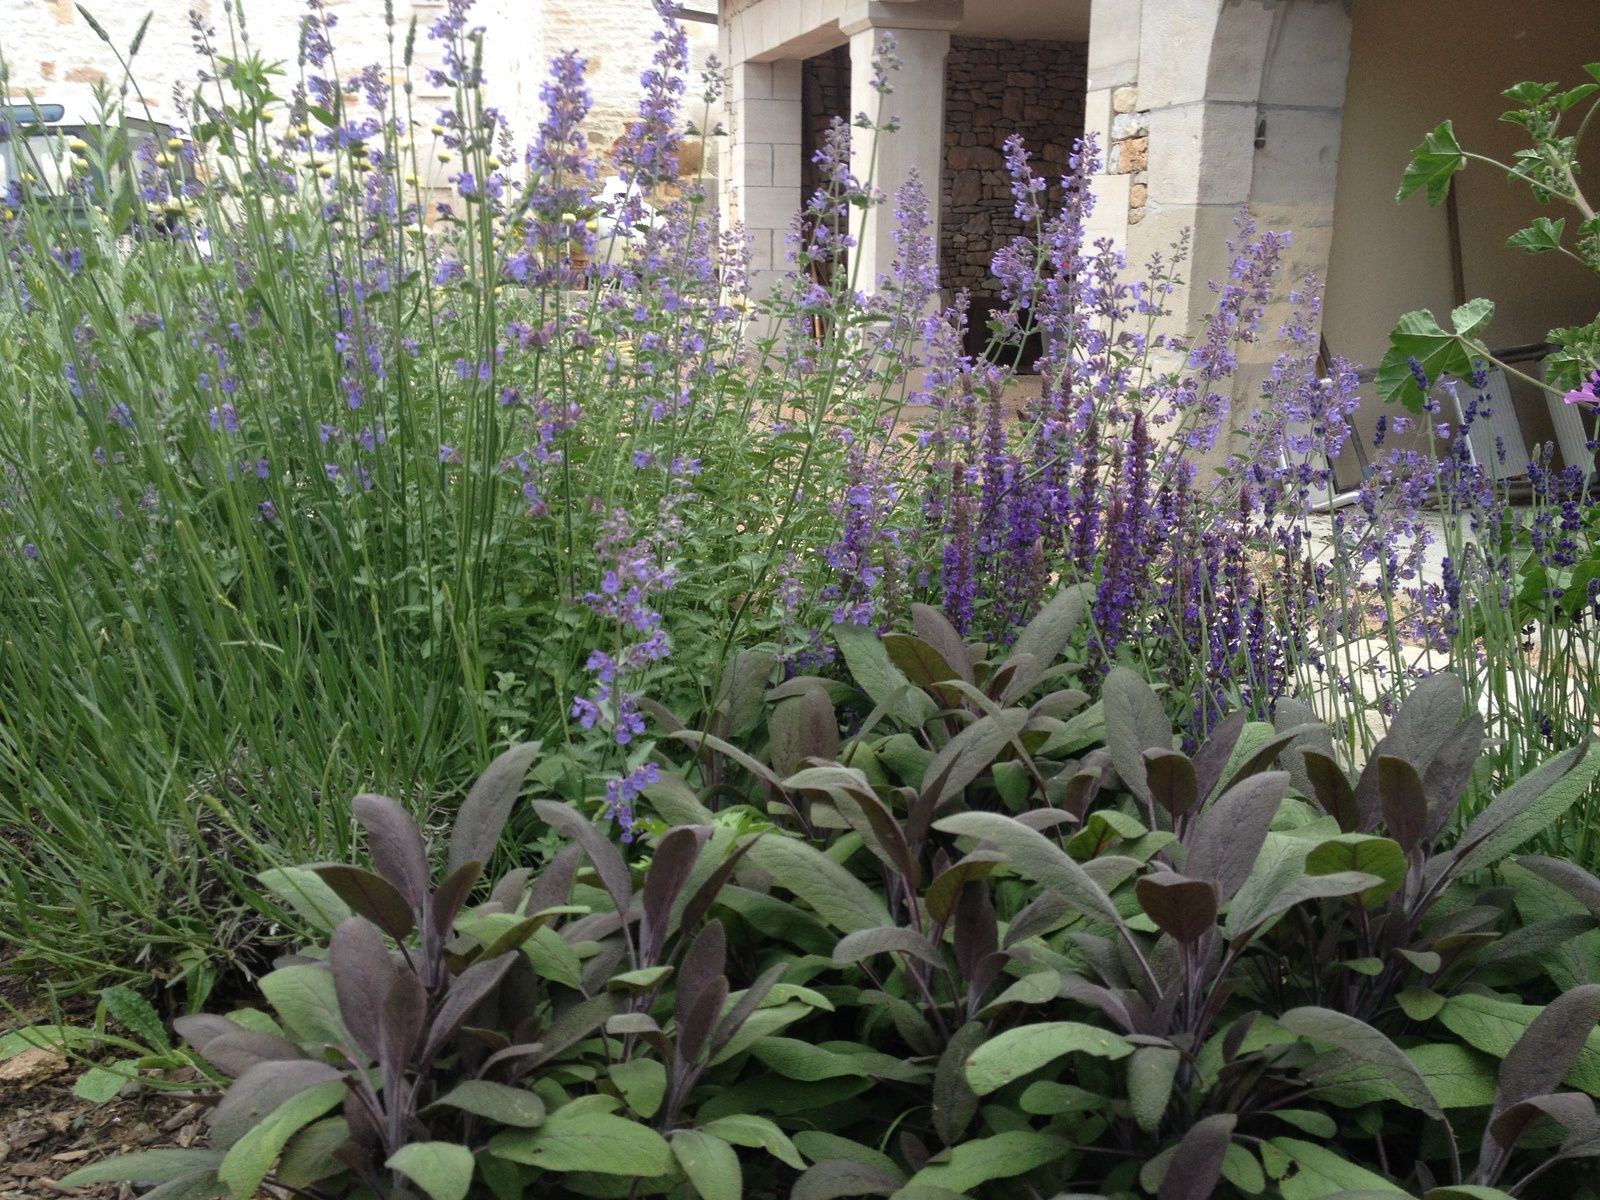 Salvia officinalis purpurascens au premier plan